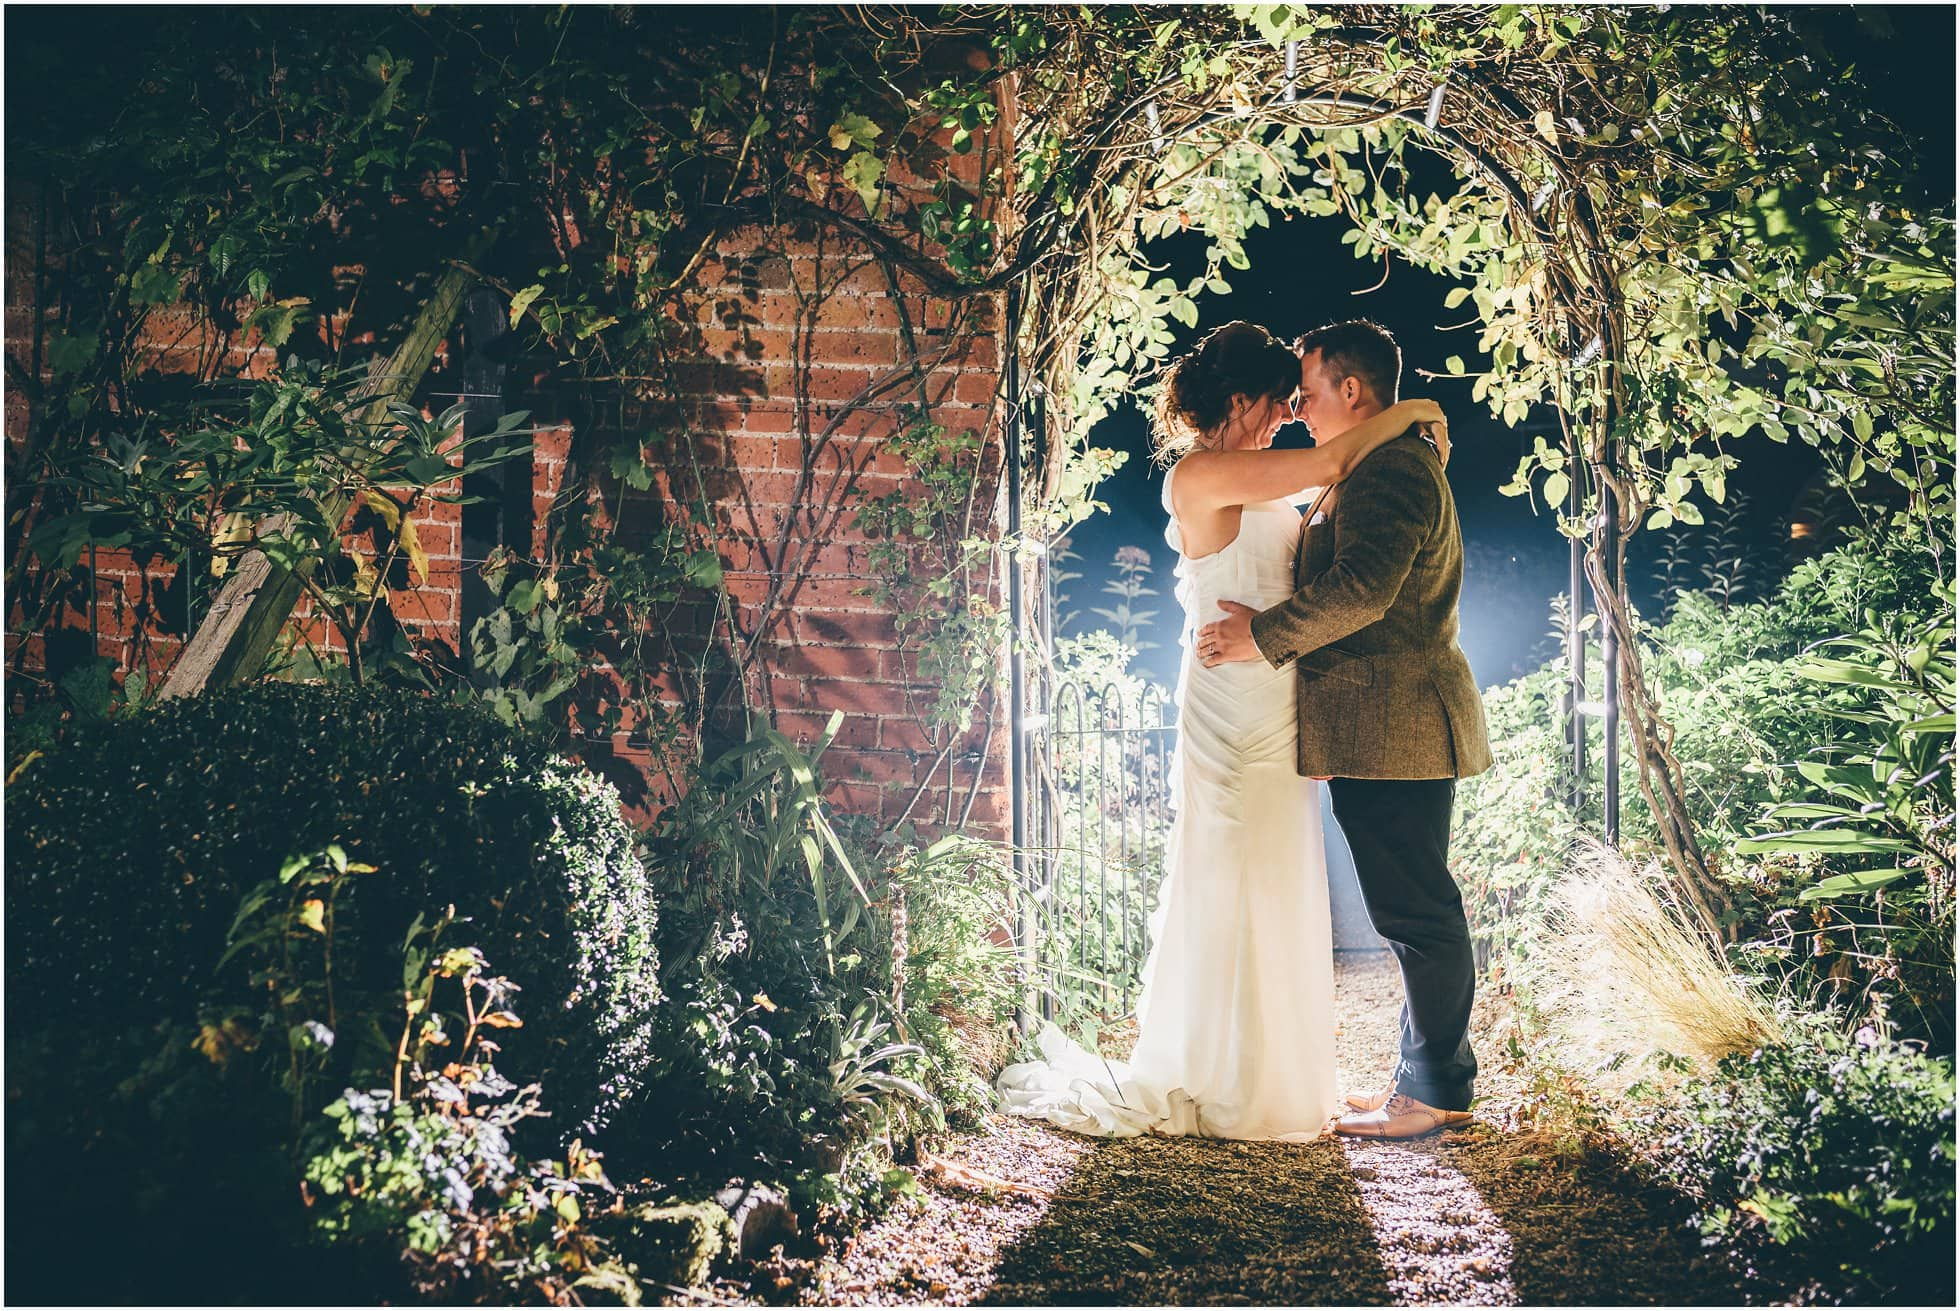 Milsoms garden excellent for wedding photography